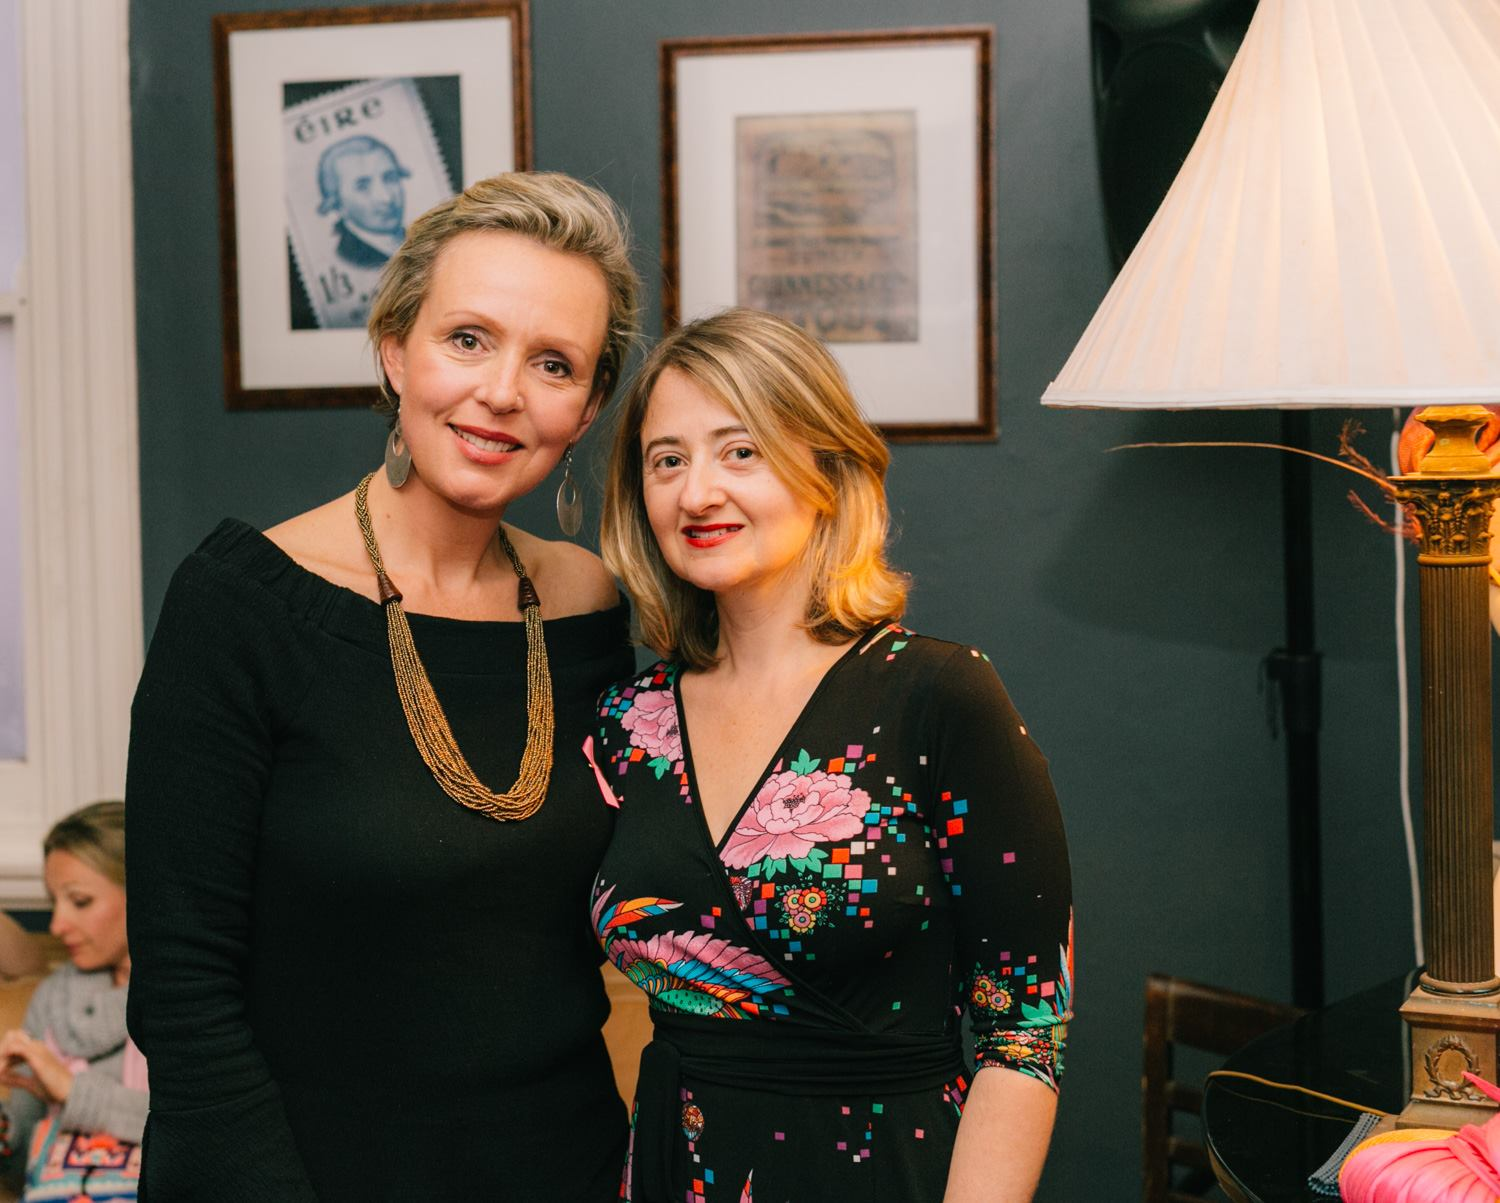 With the truly remarkable Louise Trevitt, our featured creative mama presenter who shared her heartfelt story about surviving breast cancer and how through the creative process was able to heal and become a stronger version of herself.